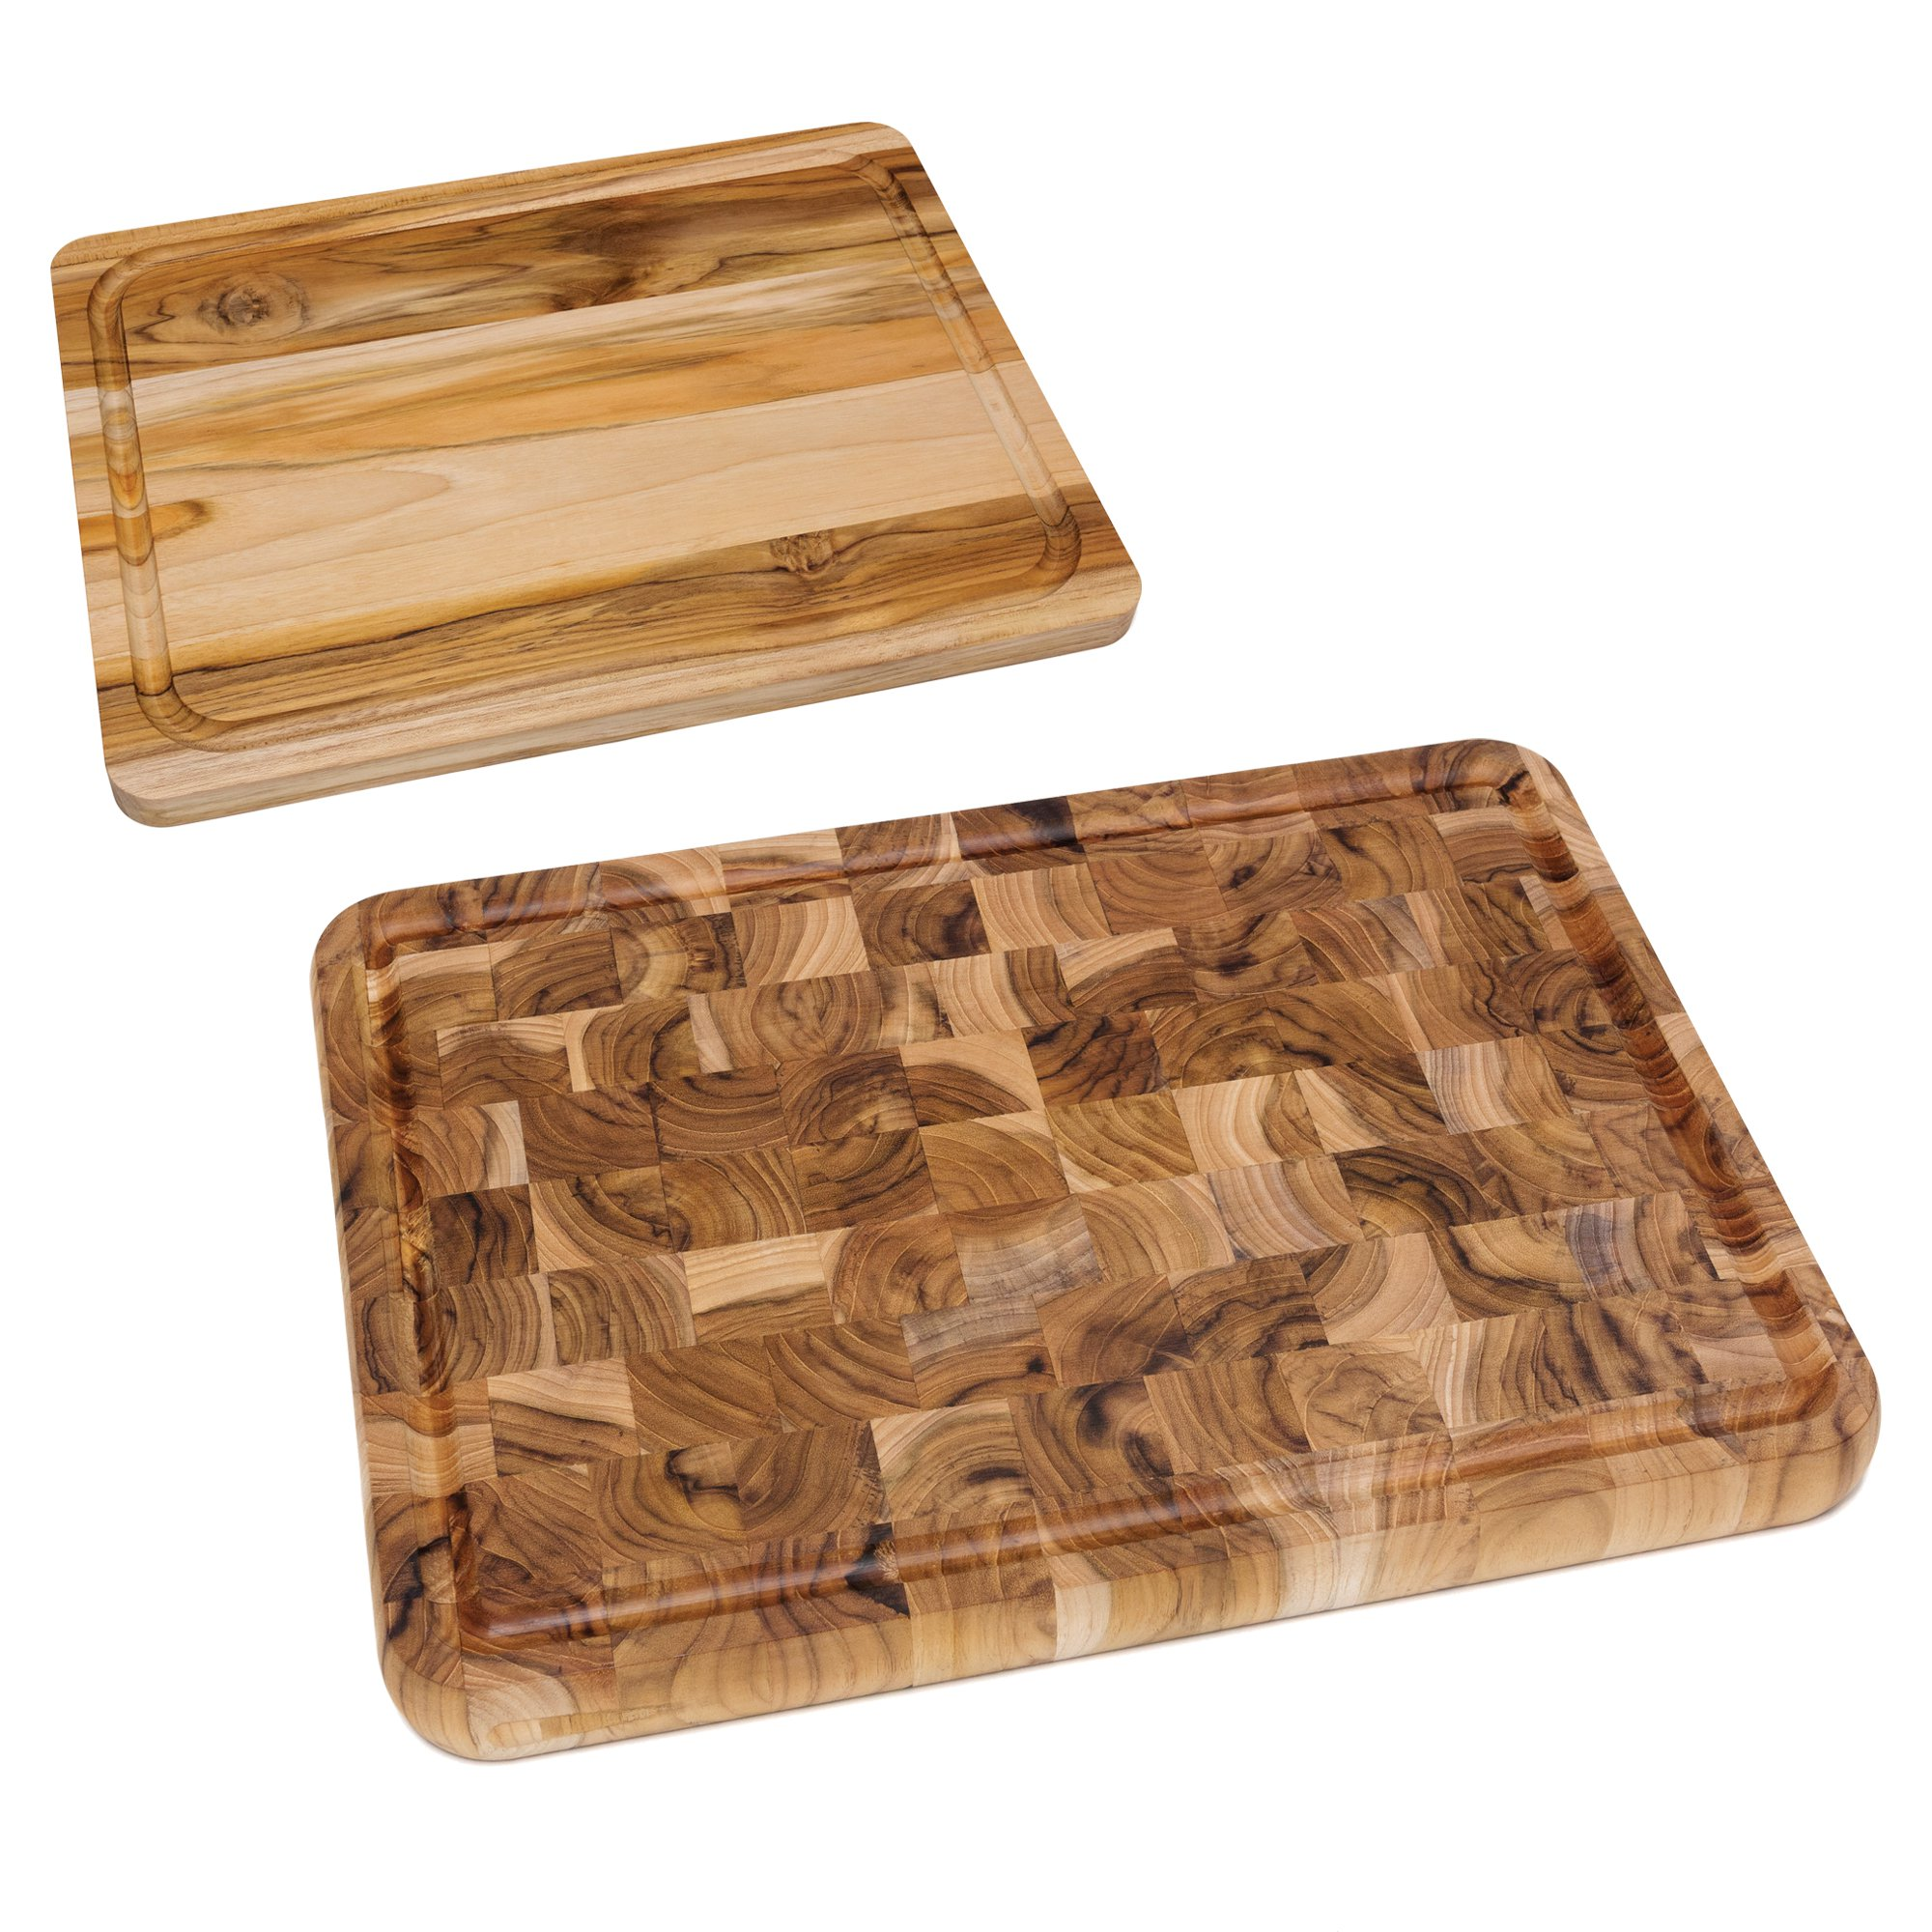 "Lipper Teak Edge Grain Wooden 16"" x 12"" Cutting Board & 16"" x 12"" Chopping Block"